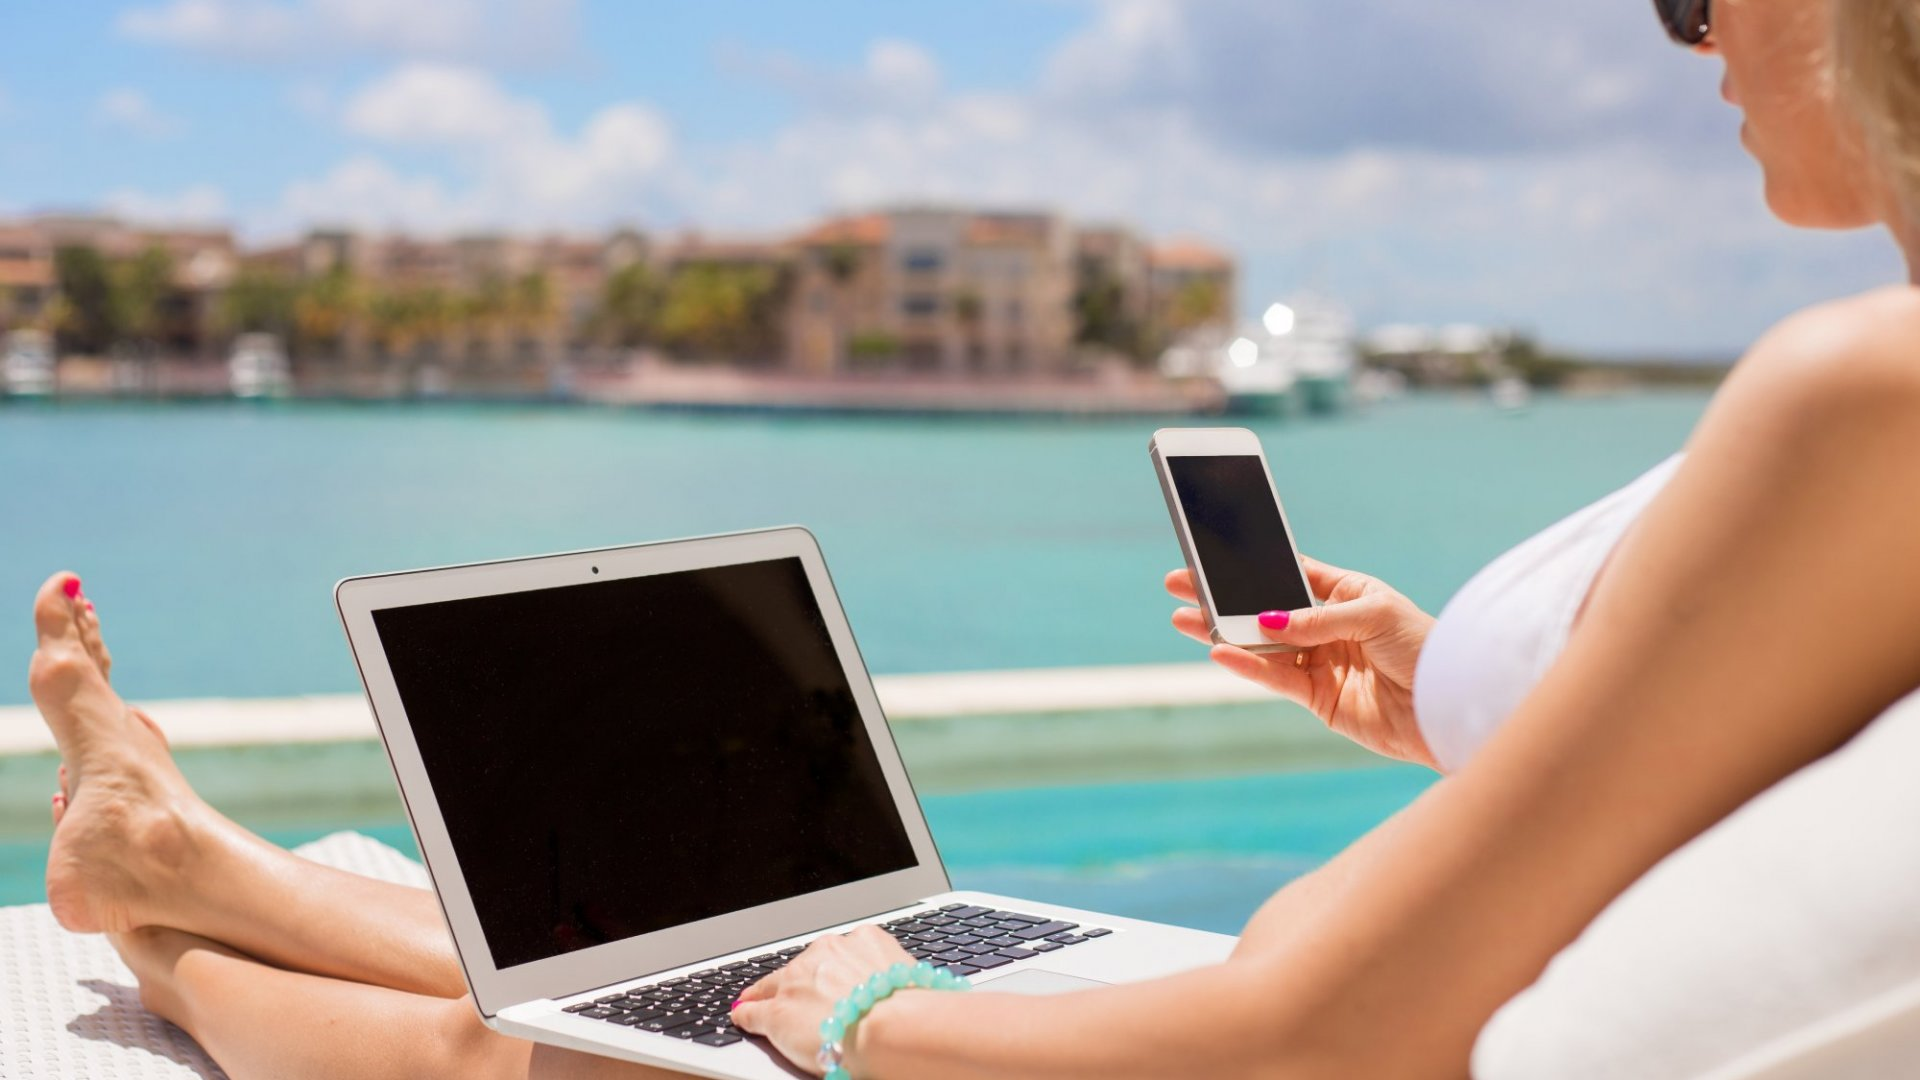 Study Shows, For Millennials, Checking In While On Vacation Is A Good Thing